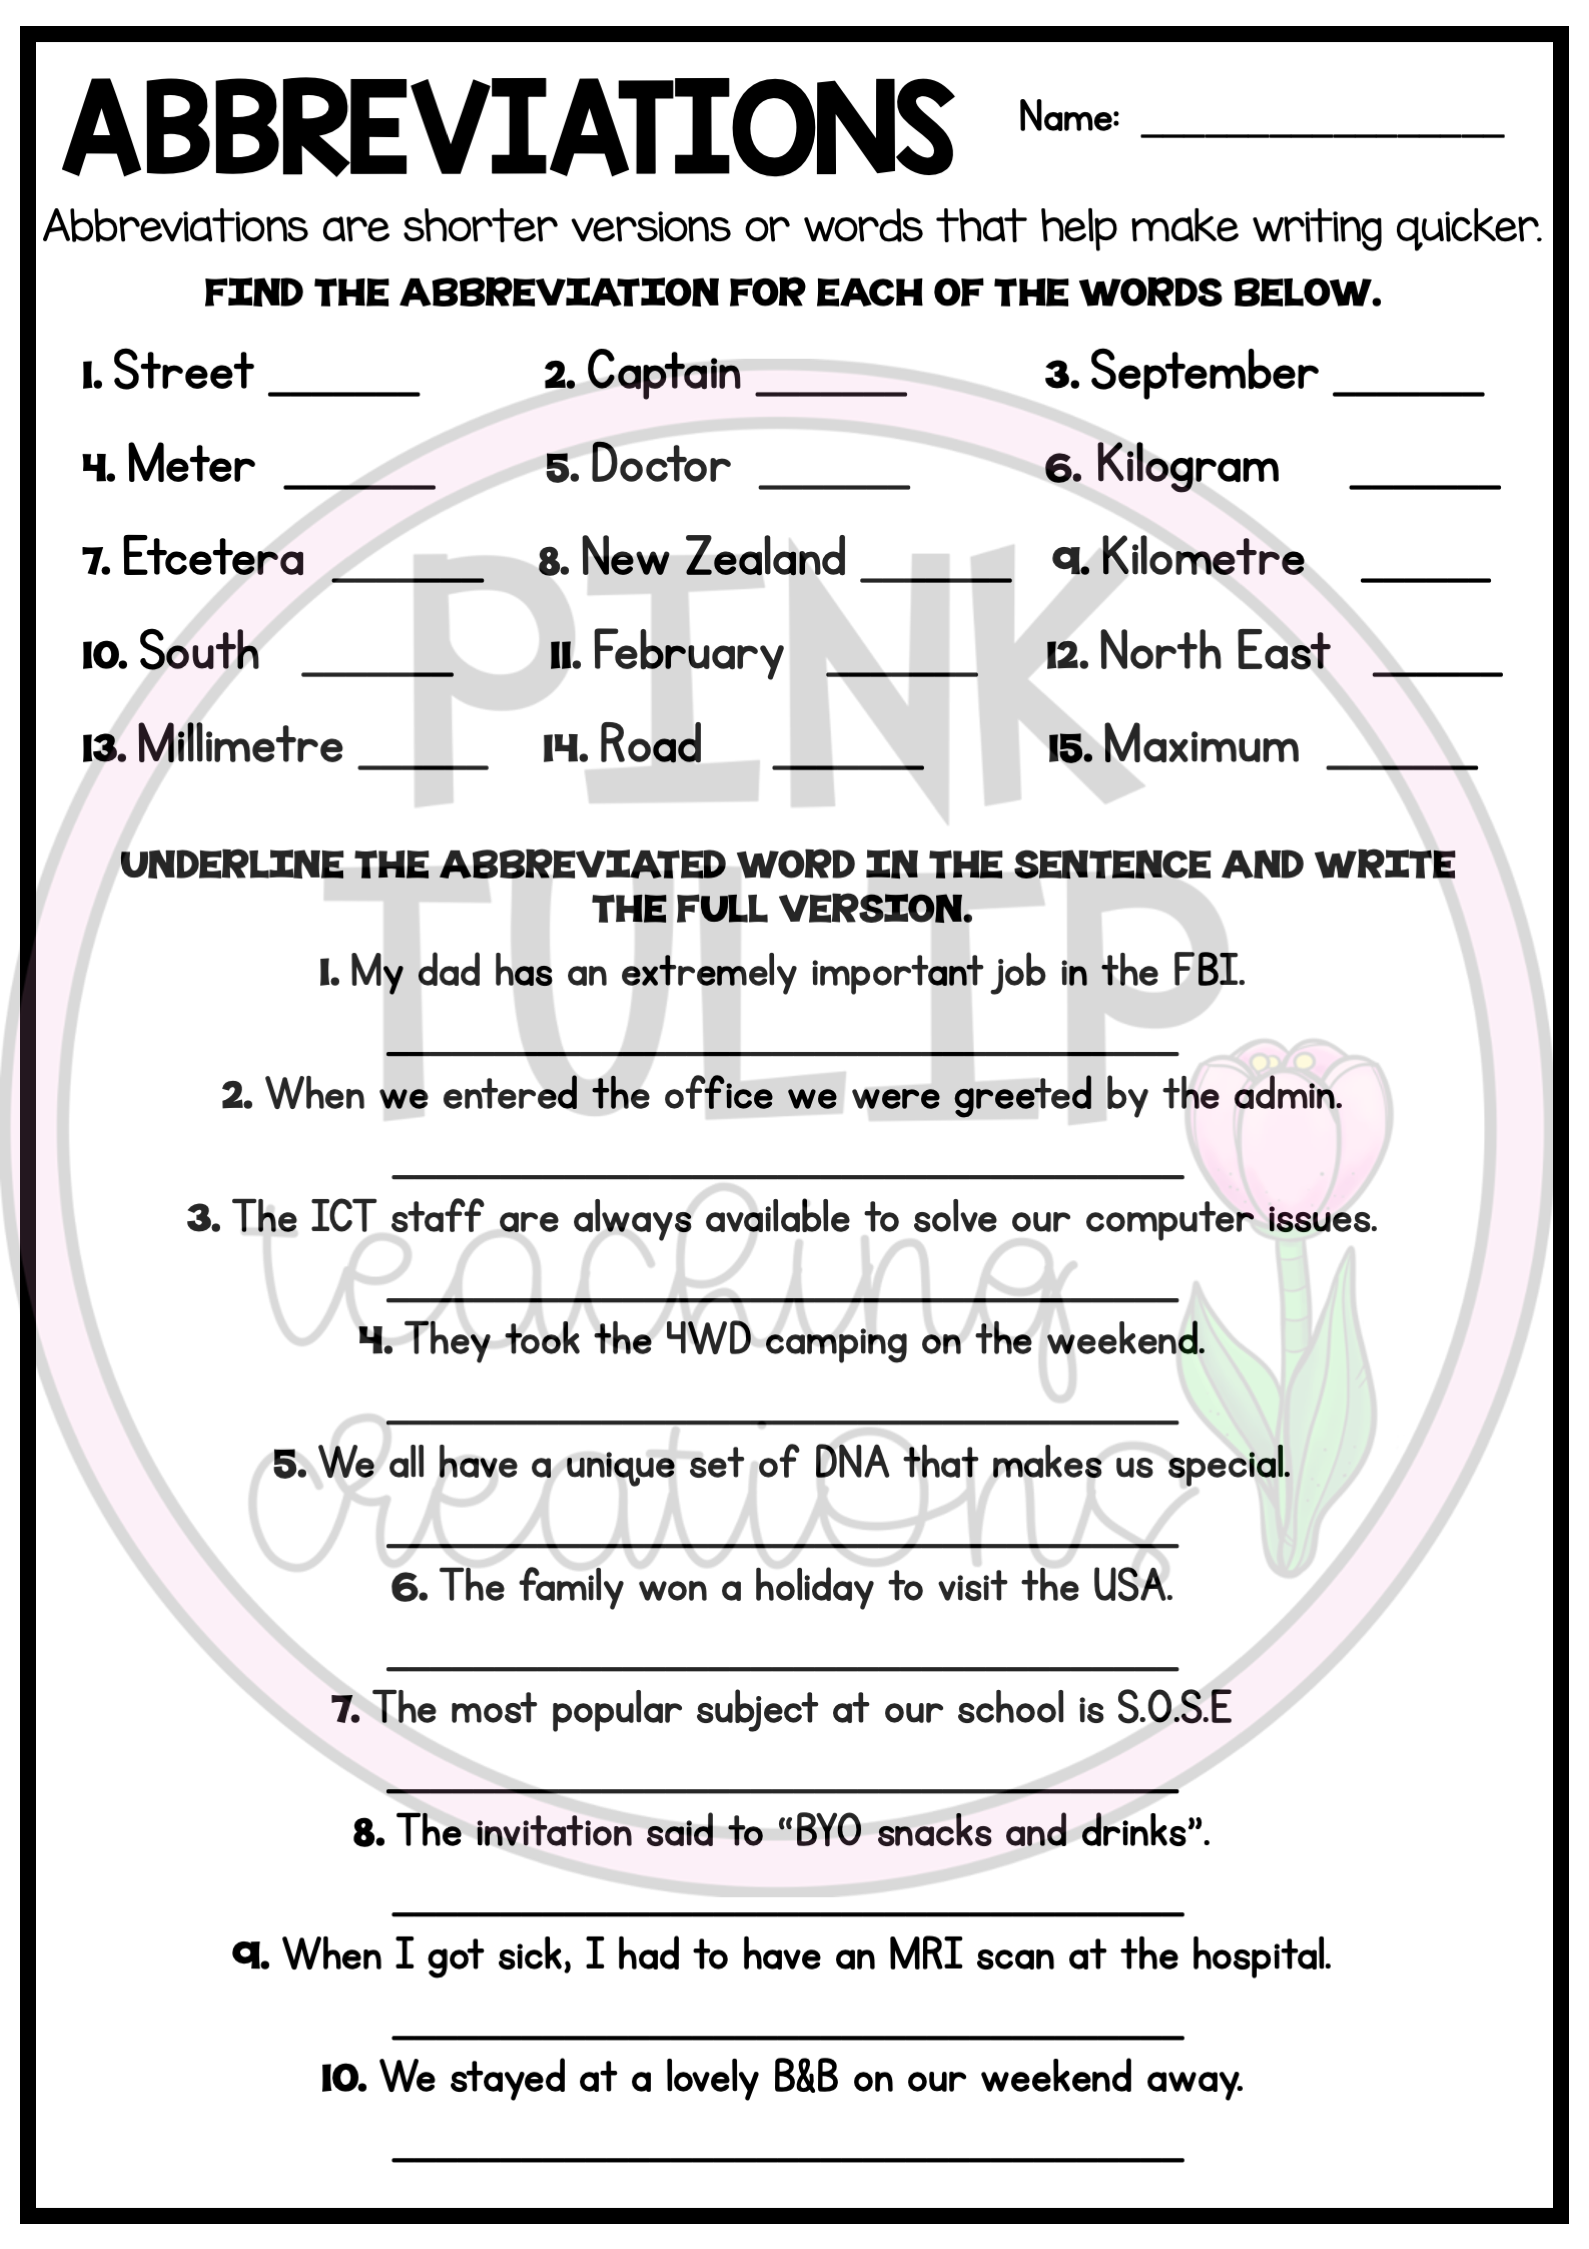 medium resolution of Abbreviations Worksheets Printable   Printable Worksheets and Activities  for Teachers